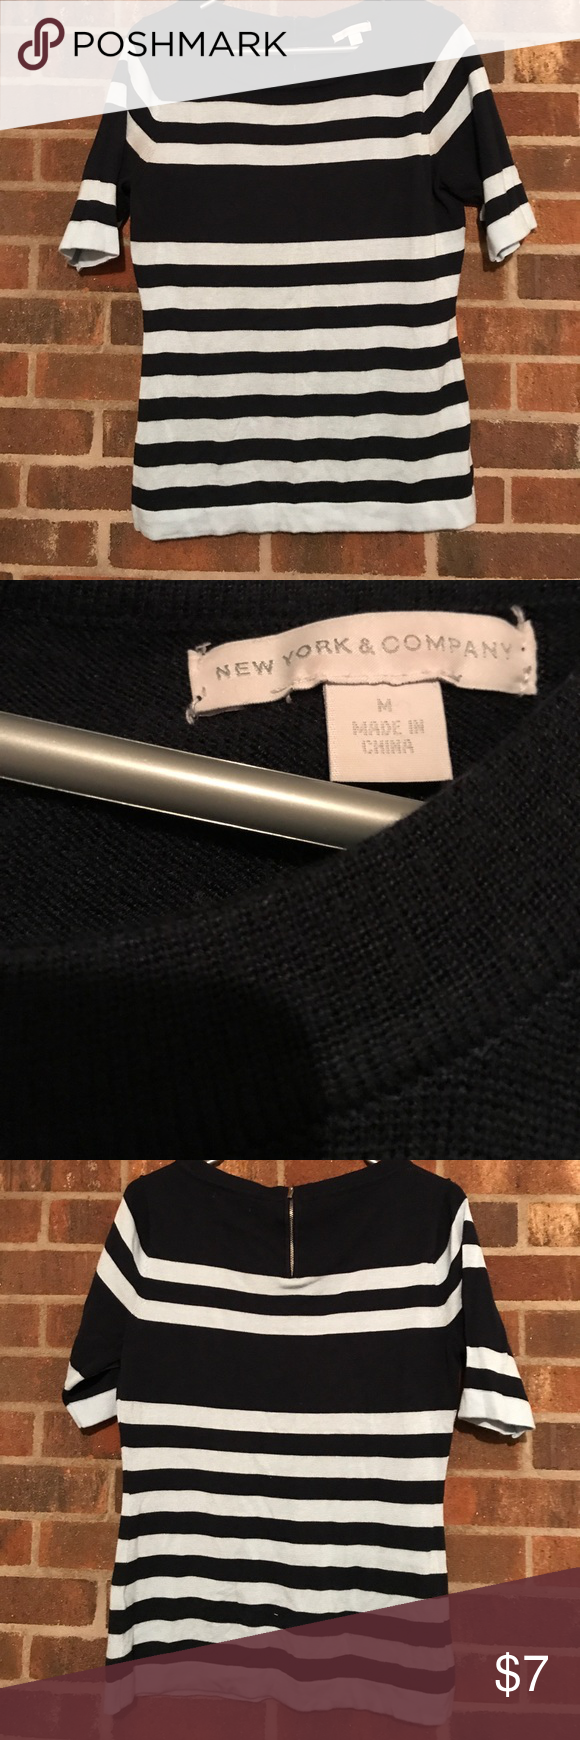 New York and Co Top Navy blue and light blue sweater. Zipper detail on the back. Great condition! New York & Company Tops